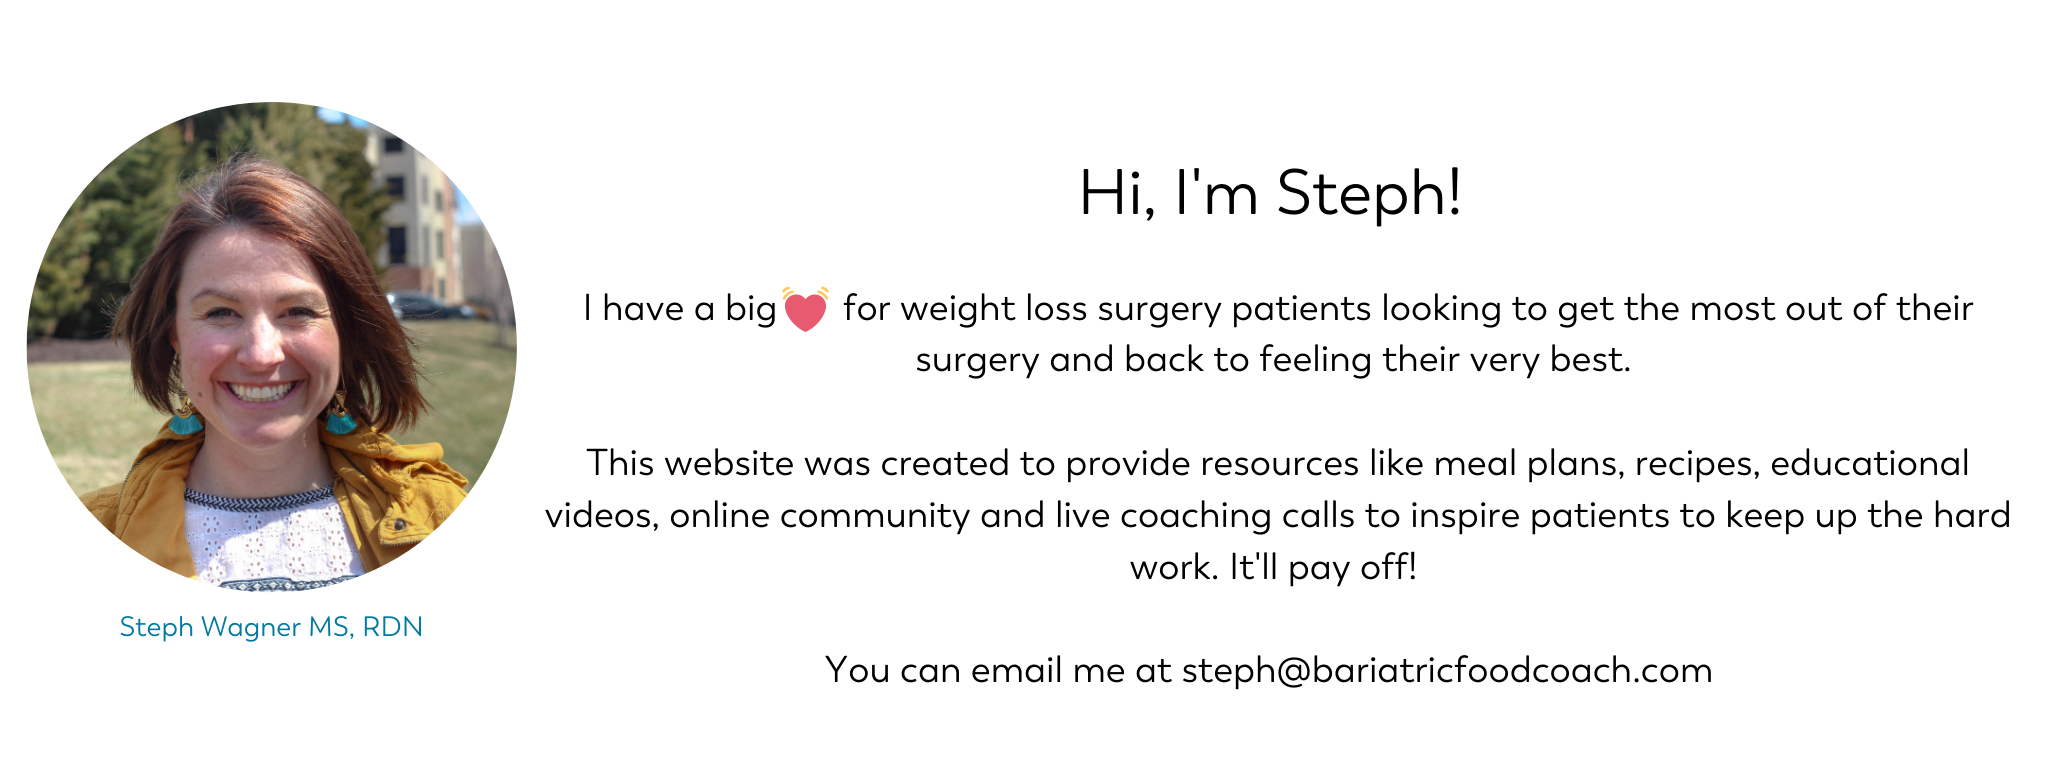 Website Bio for Steph Wagner dietitian on Bariatric Food Coach